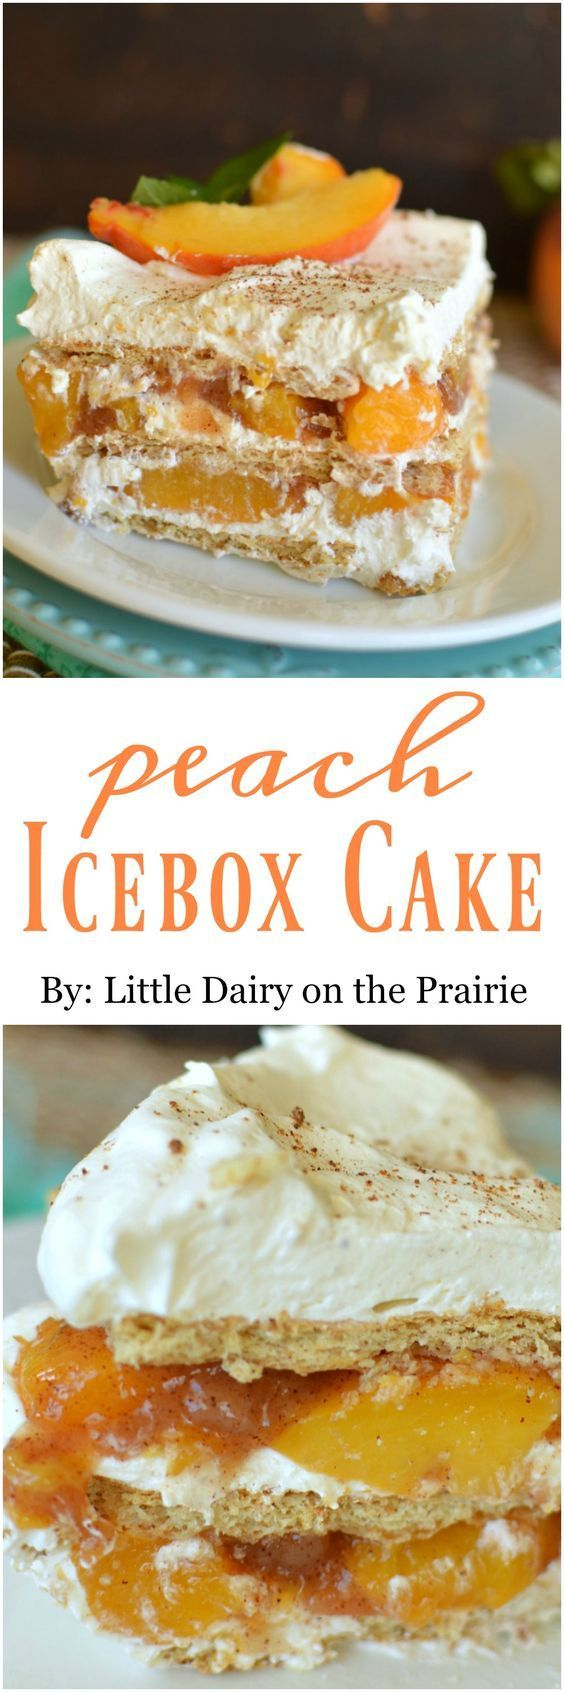 No Bake Peach Ice Box Cake is a scrumptious, quick and easy summer/fall dessert!